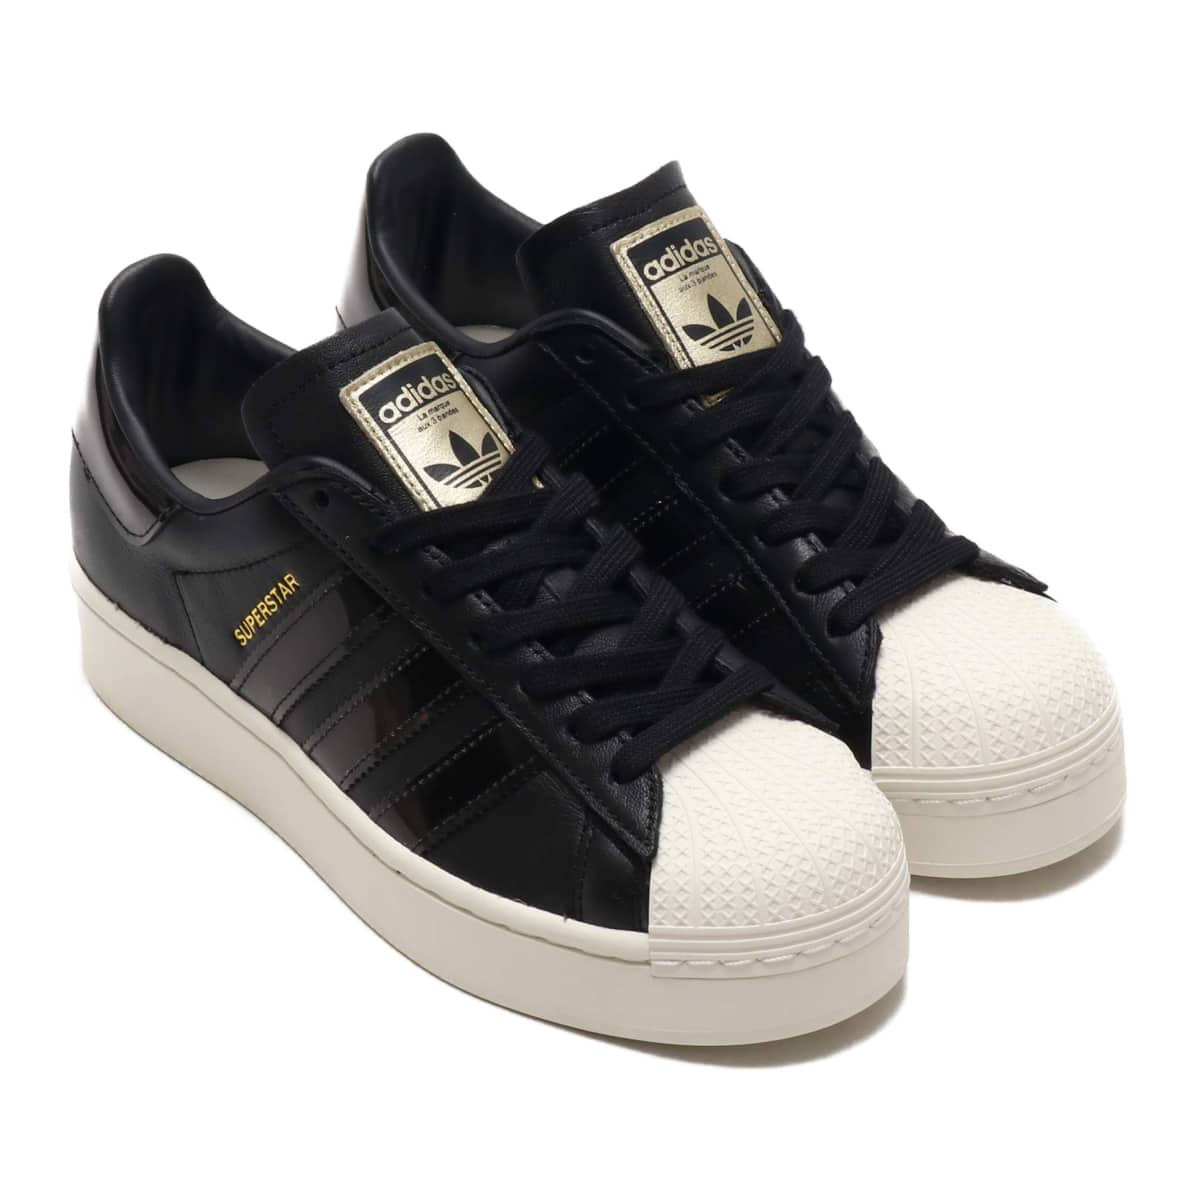 adidas SUPERSTARBOLD W CORE BLACK/OFF WHITE/GOLD METARIC 20SS-S_photo_large